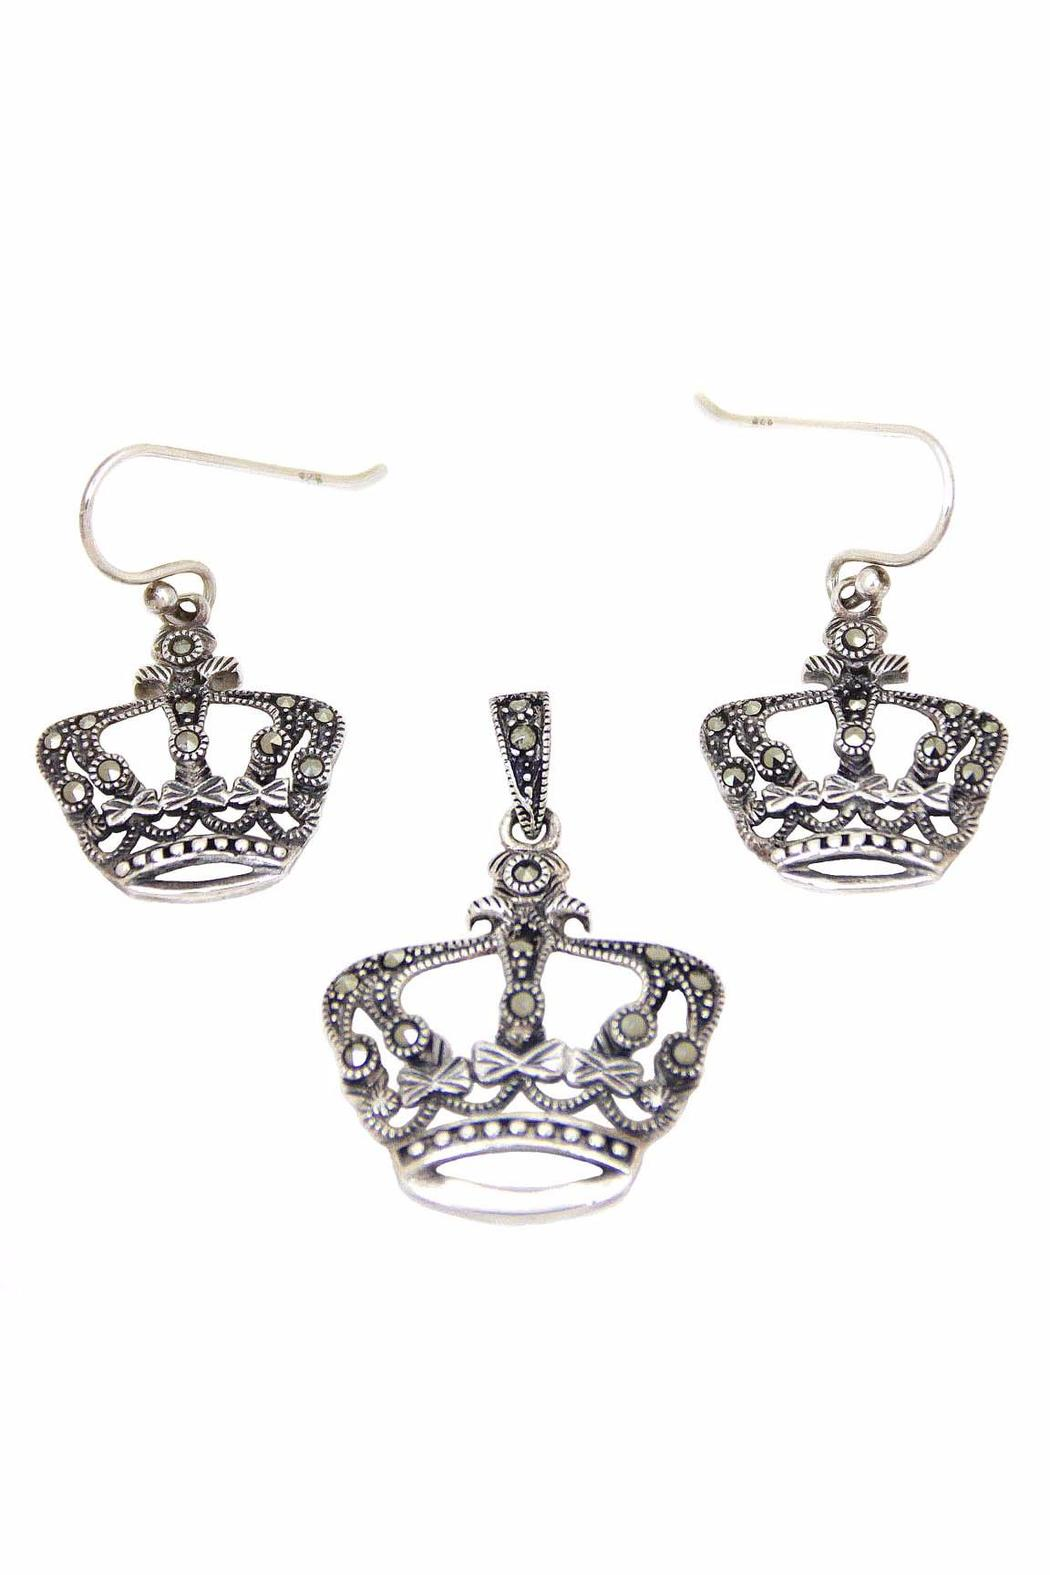 Diane's Accessories Crown-Pendant &-Earring Sterling-Silver - Main Image